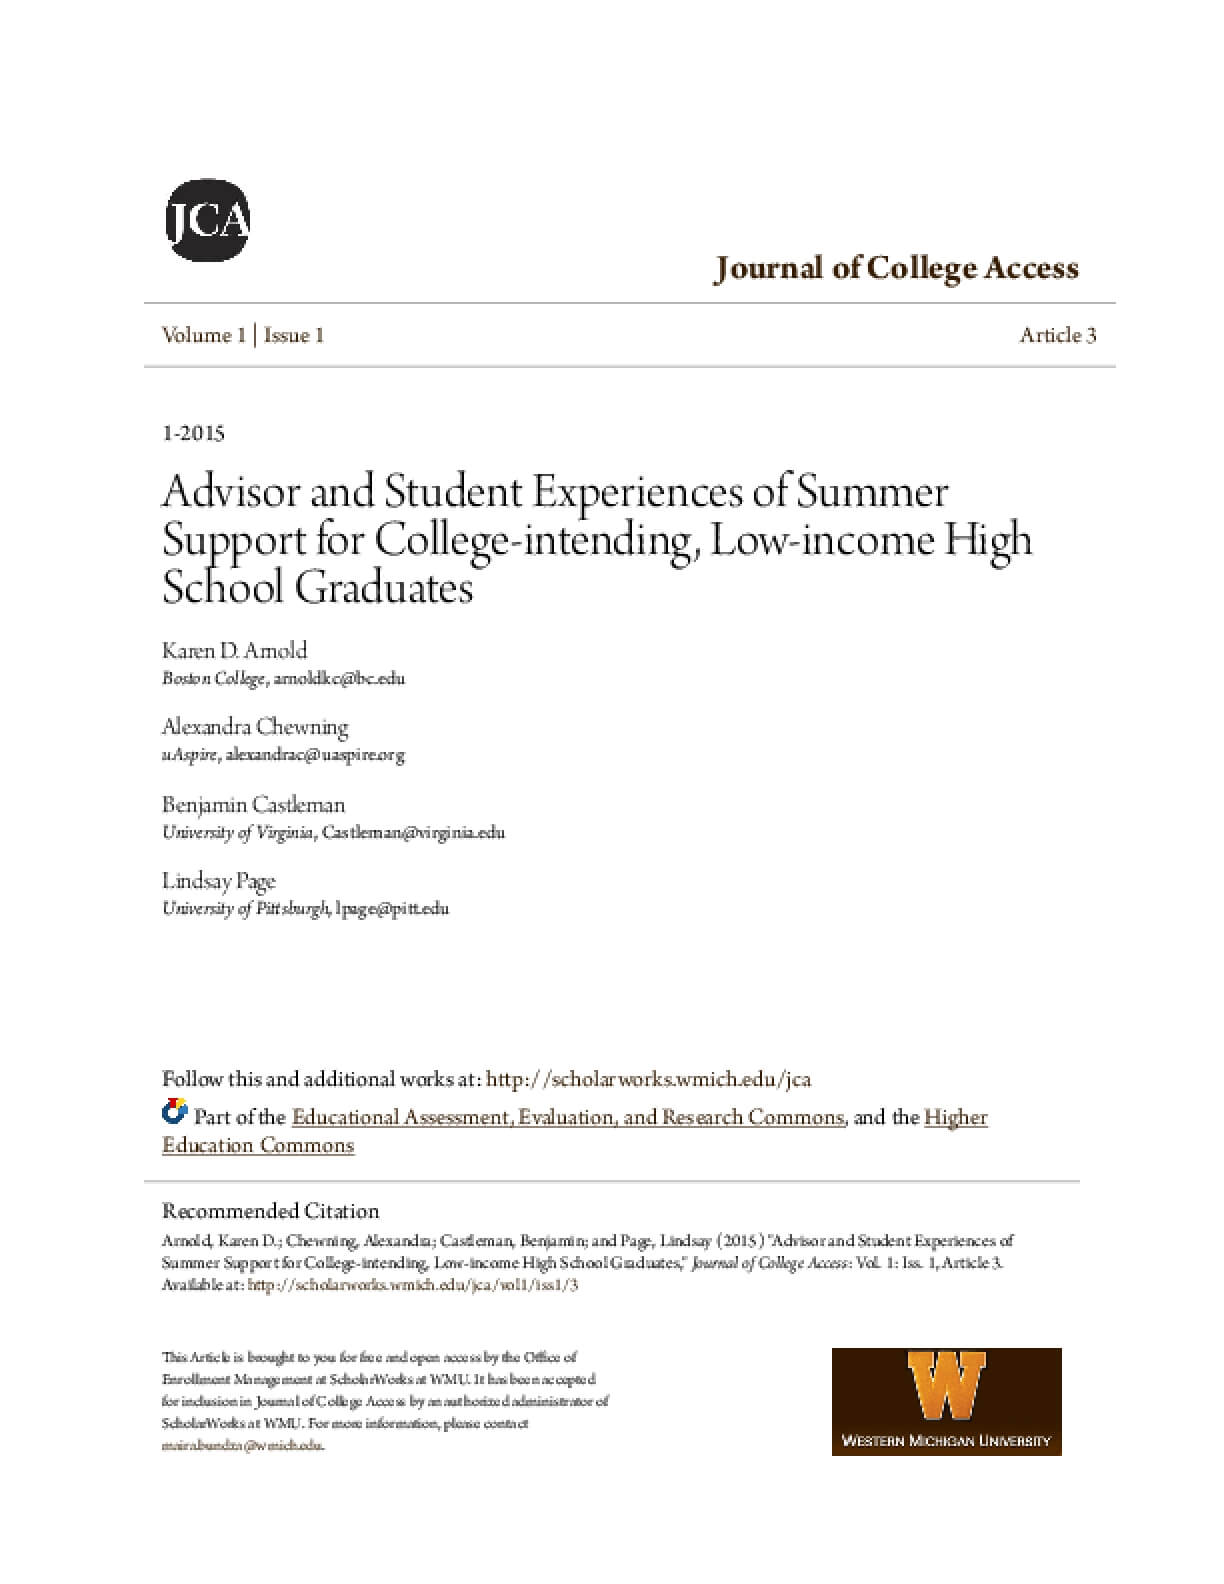 Advisor and Student Experiences of Summer Support for College-intending, Low-income high school graduates